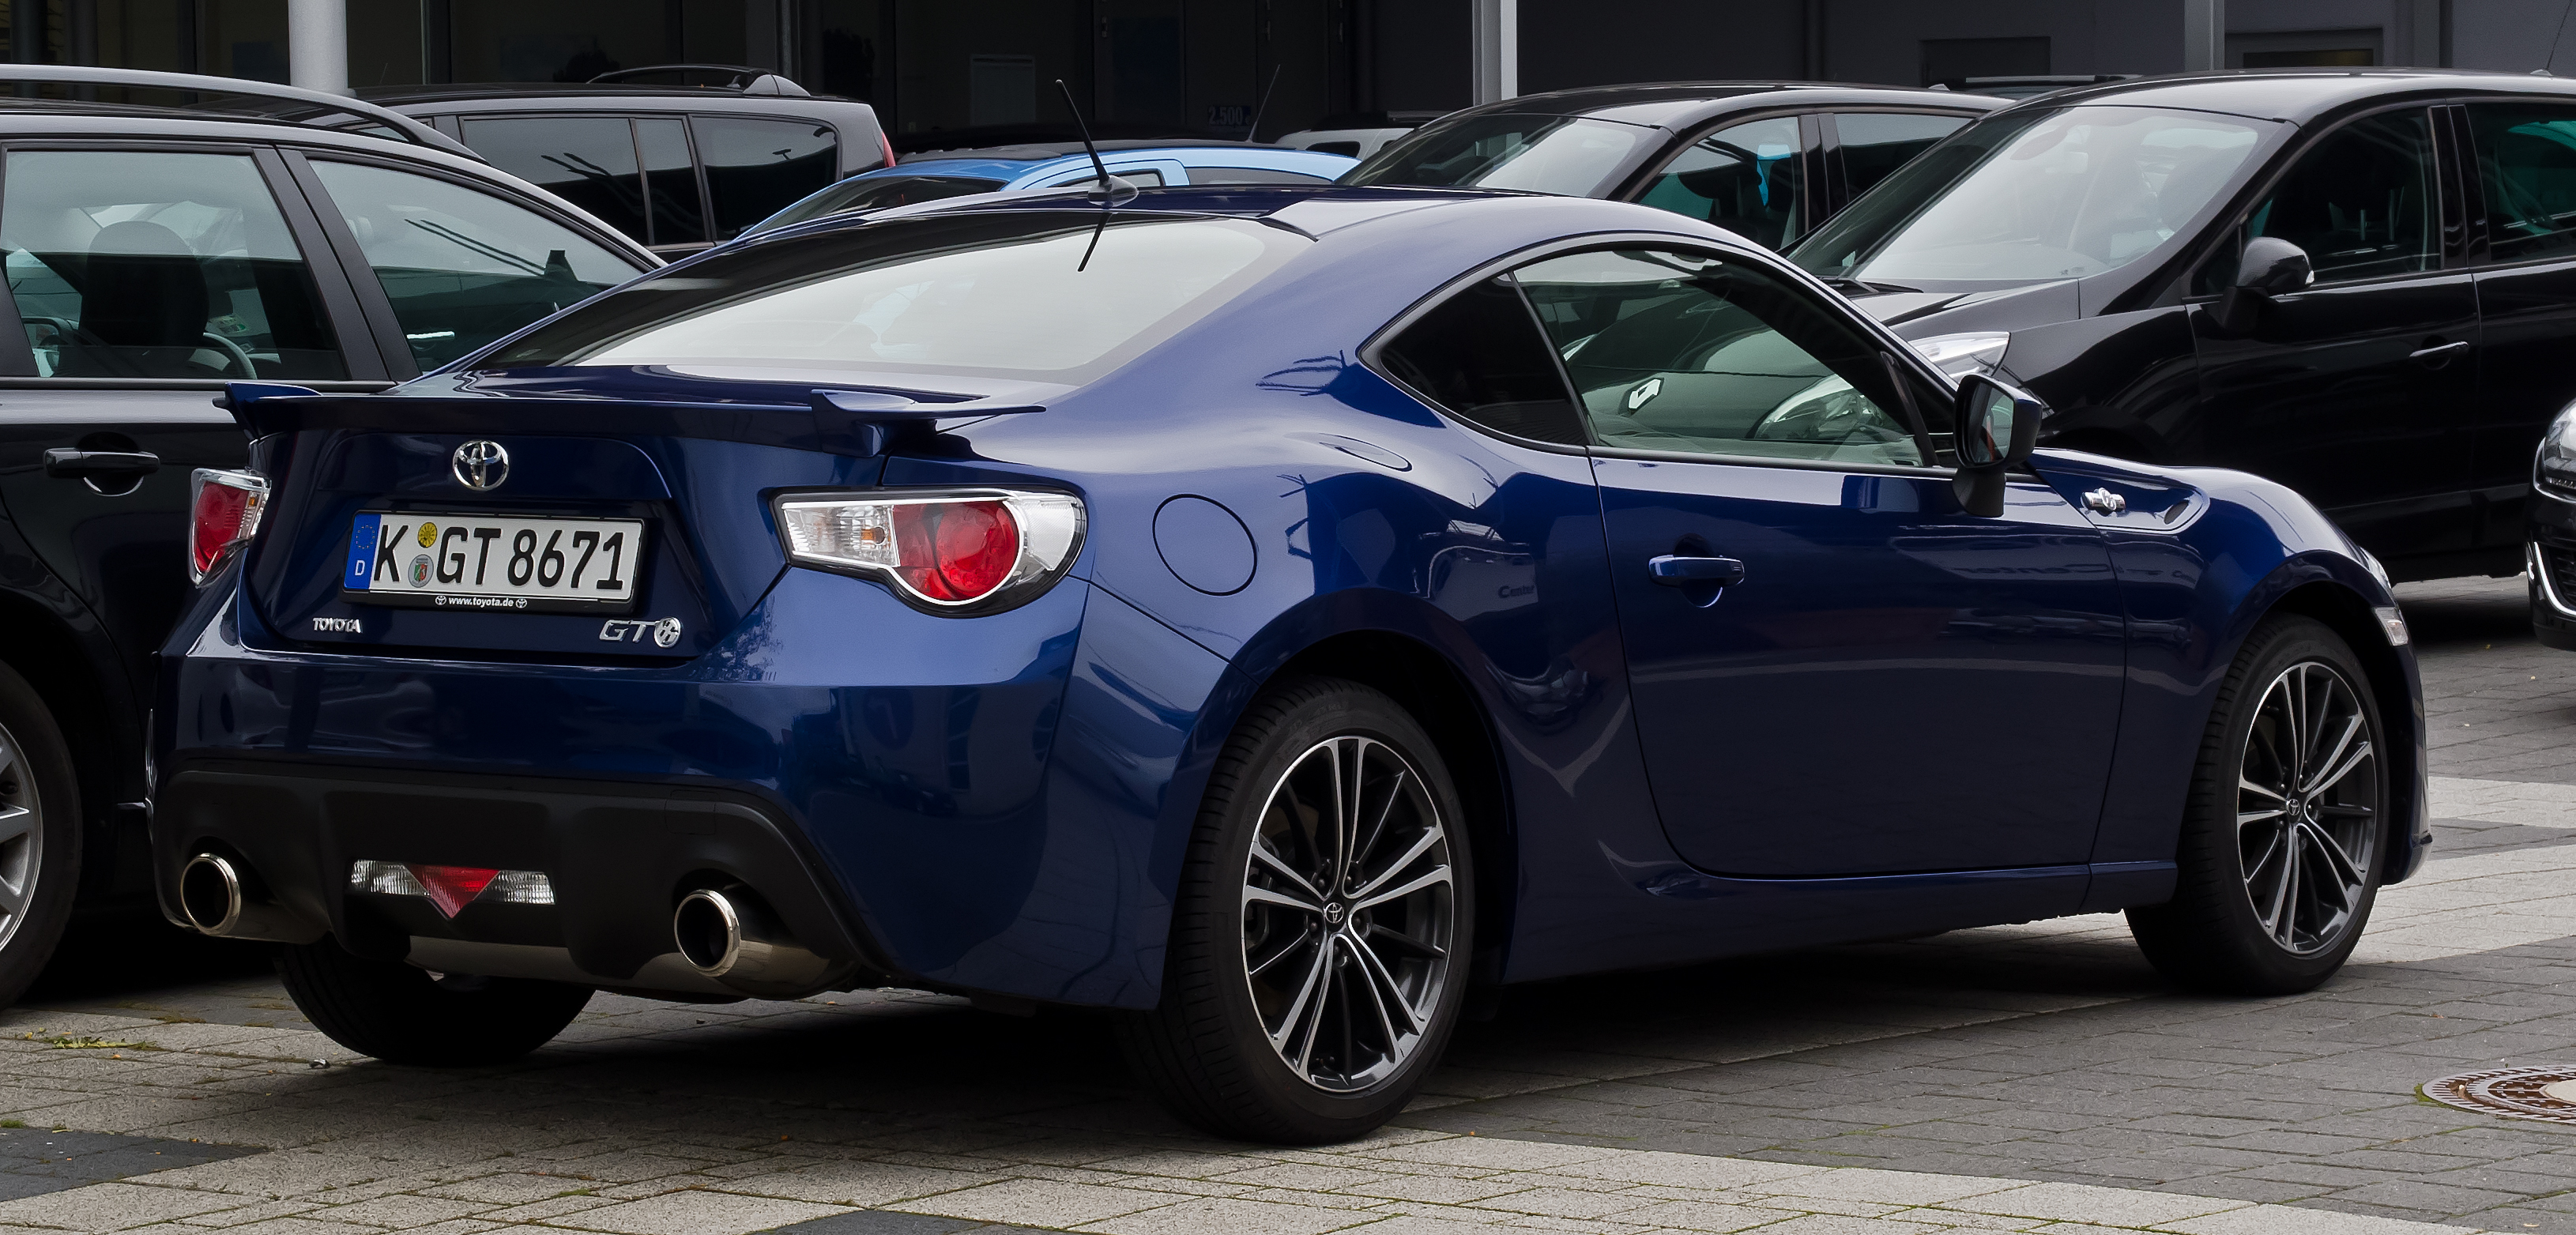 file toyota gt86 heckansicht 1 17 september 2012 d wikimedia commons. Black Bedroom Furniture Sets. Home Design Ideas